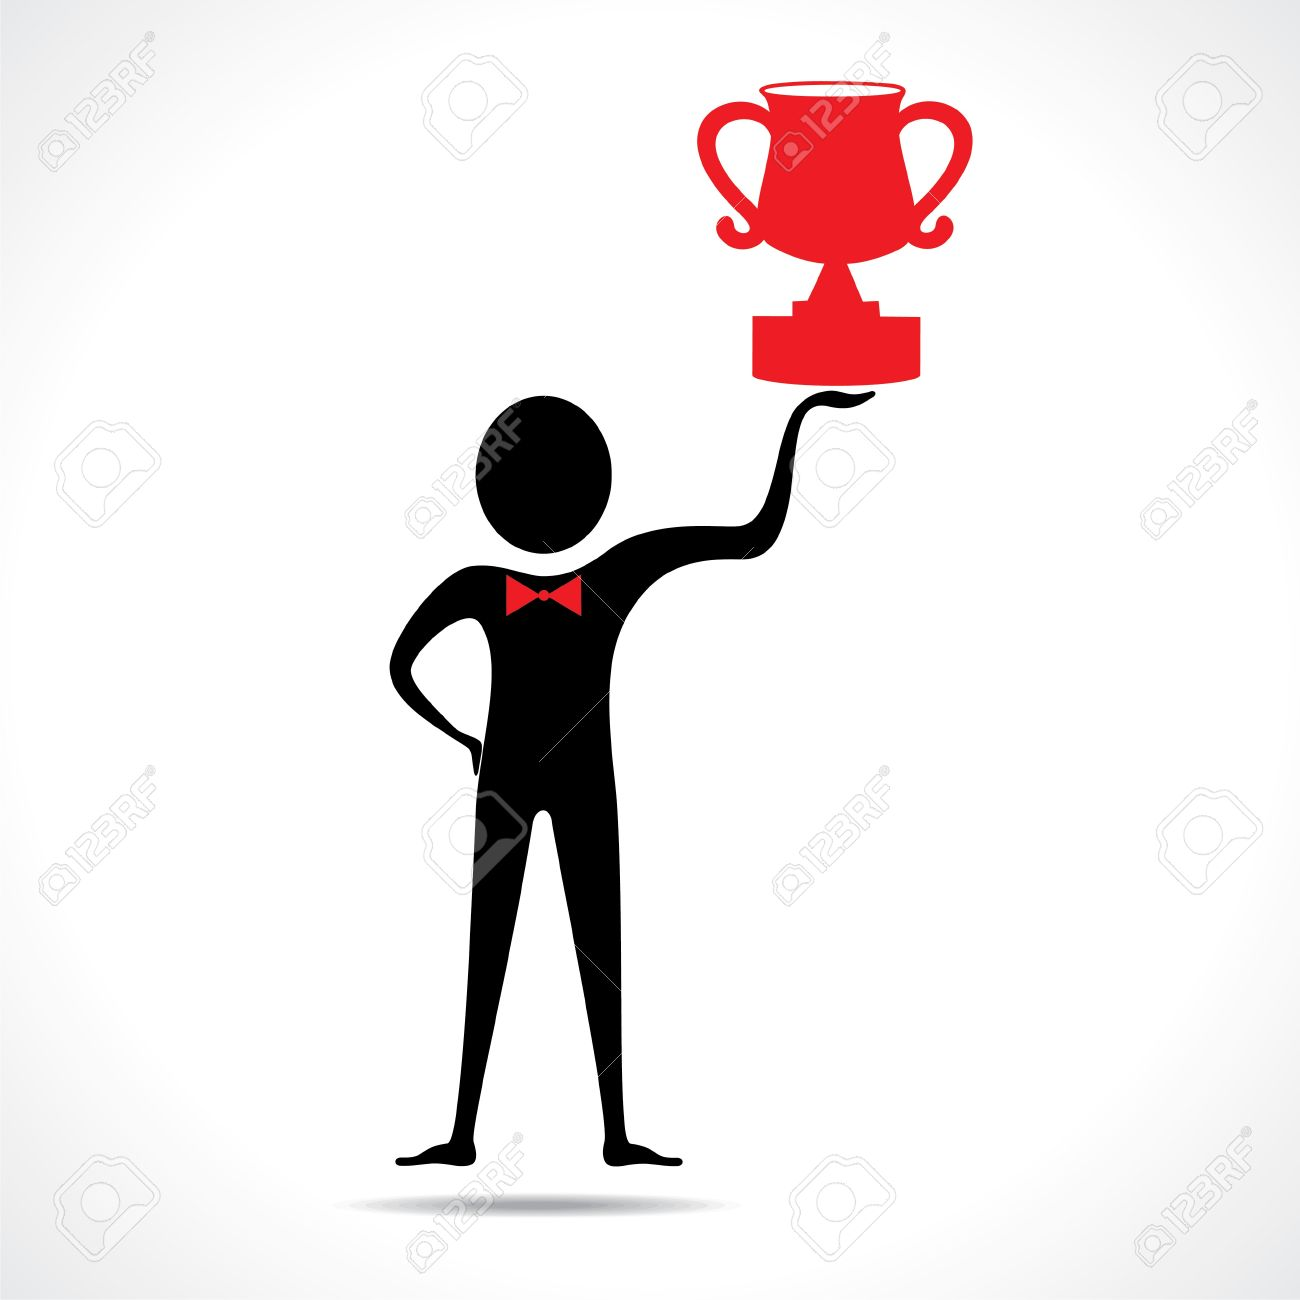 Man Holding A Trophy Vector Royalty Free Cliparts, Vectors, And.